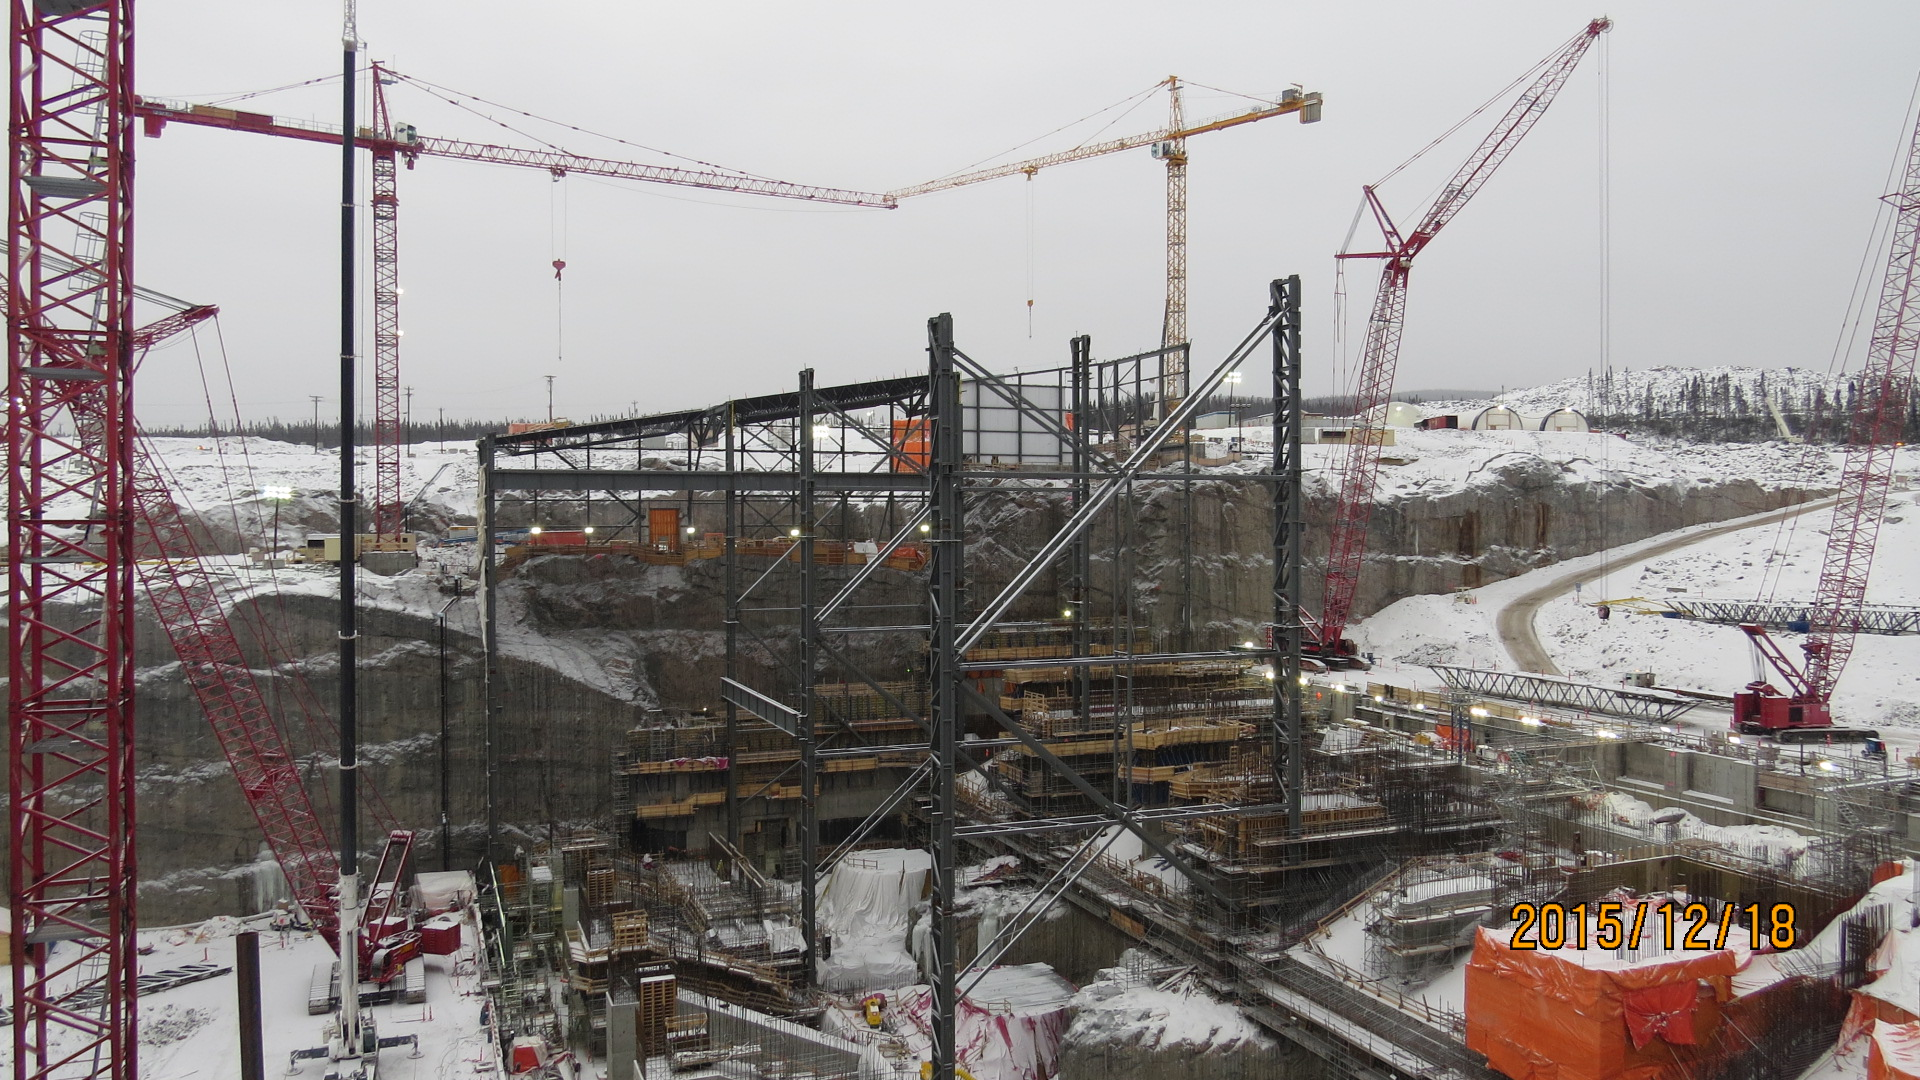 The powerhouse under construction at Muskrat Falls